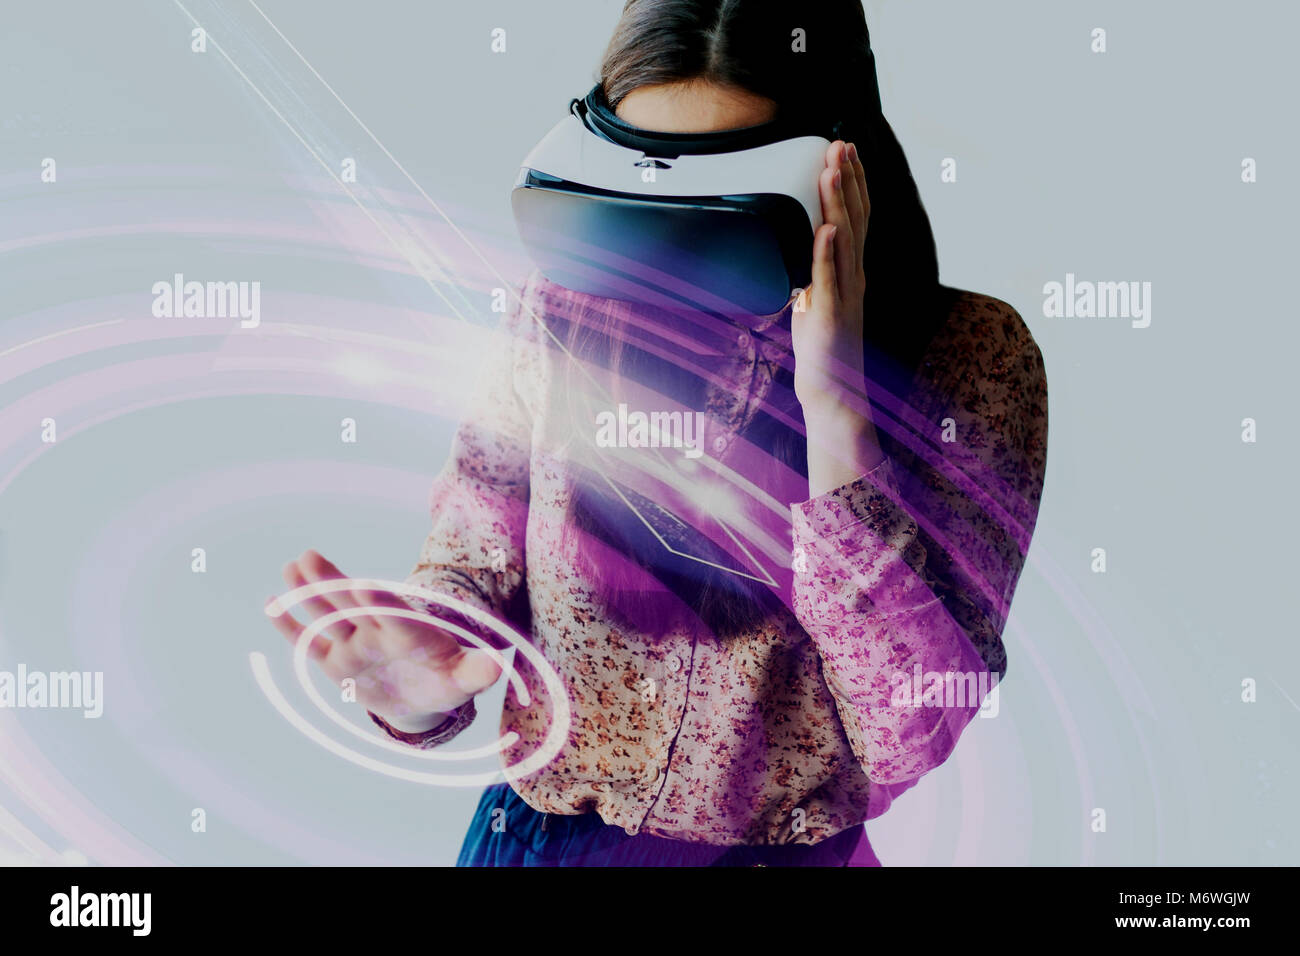 The woman with glasses of virtual reality. Future technology concept. Modern imaging technology - Stock Image